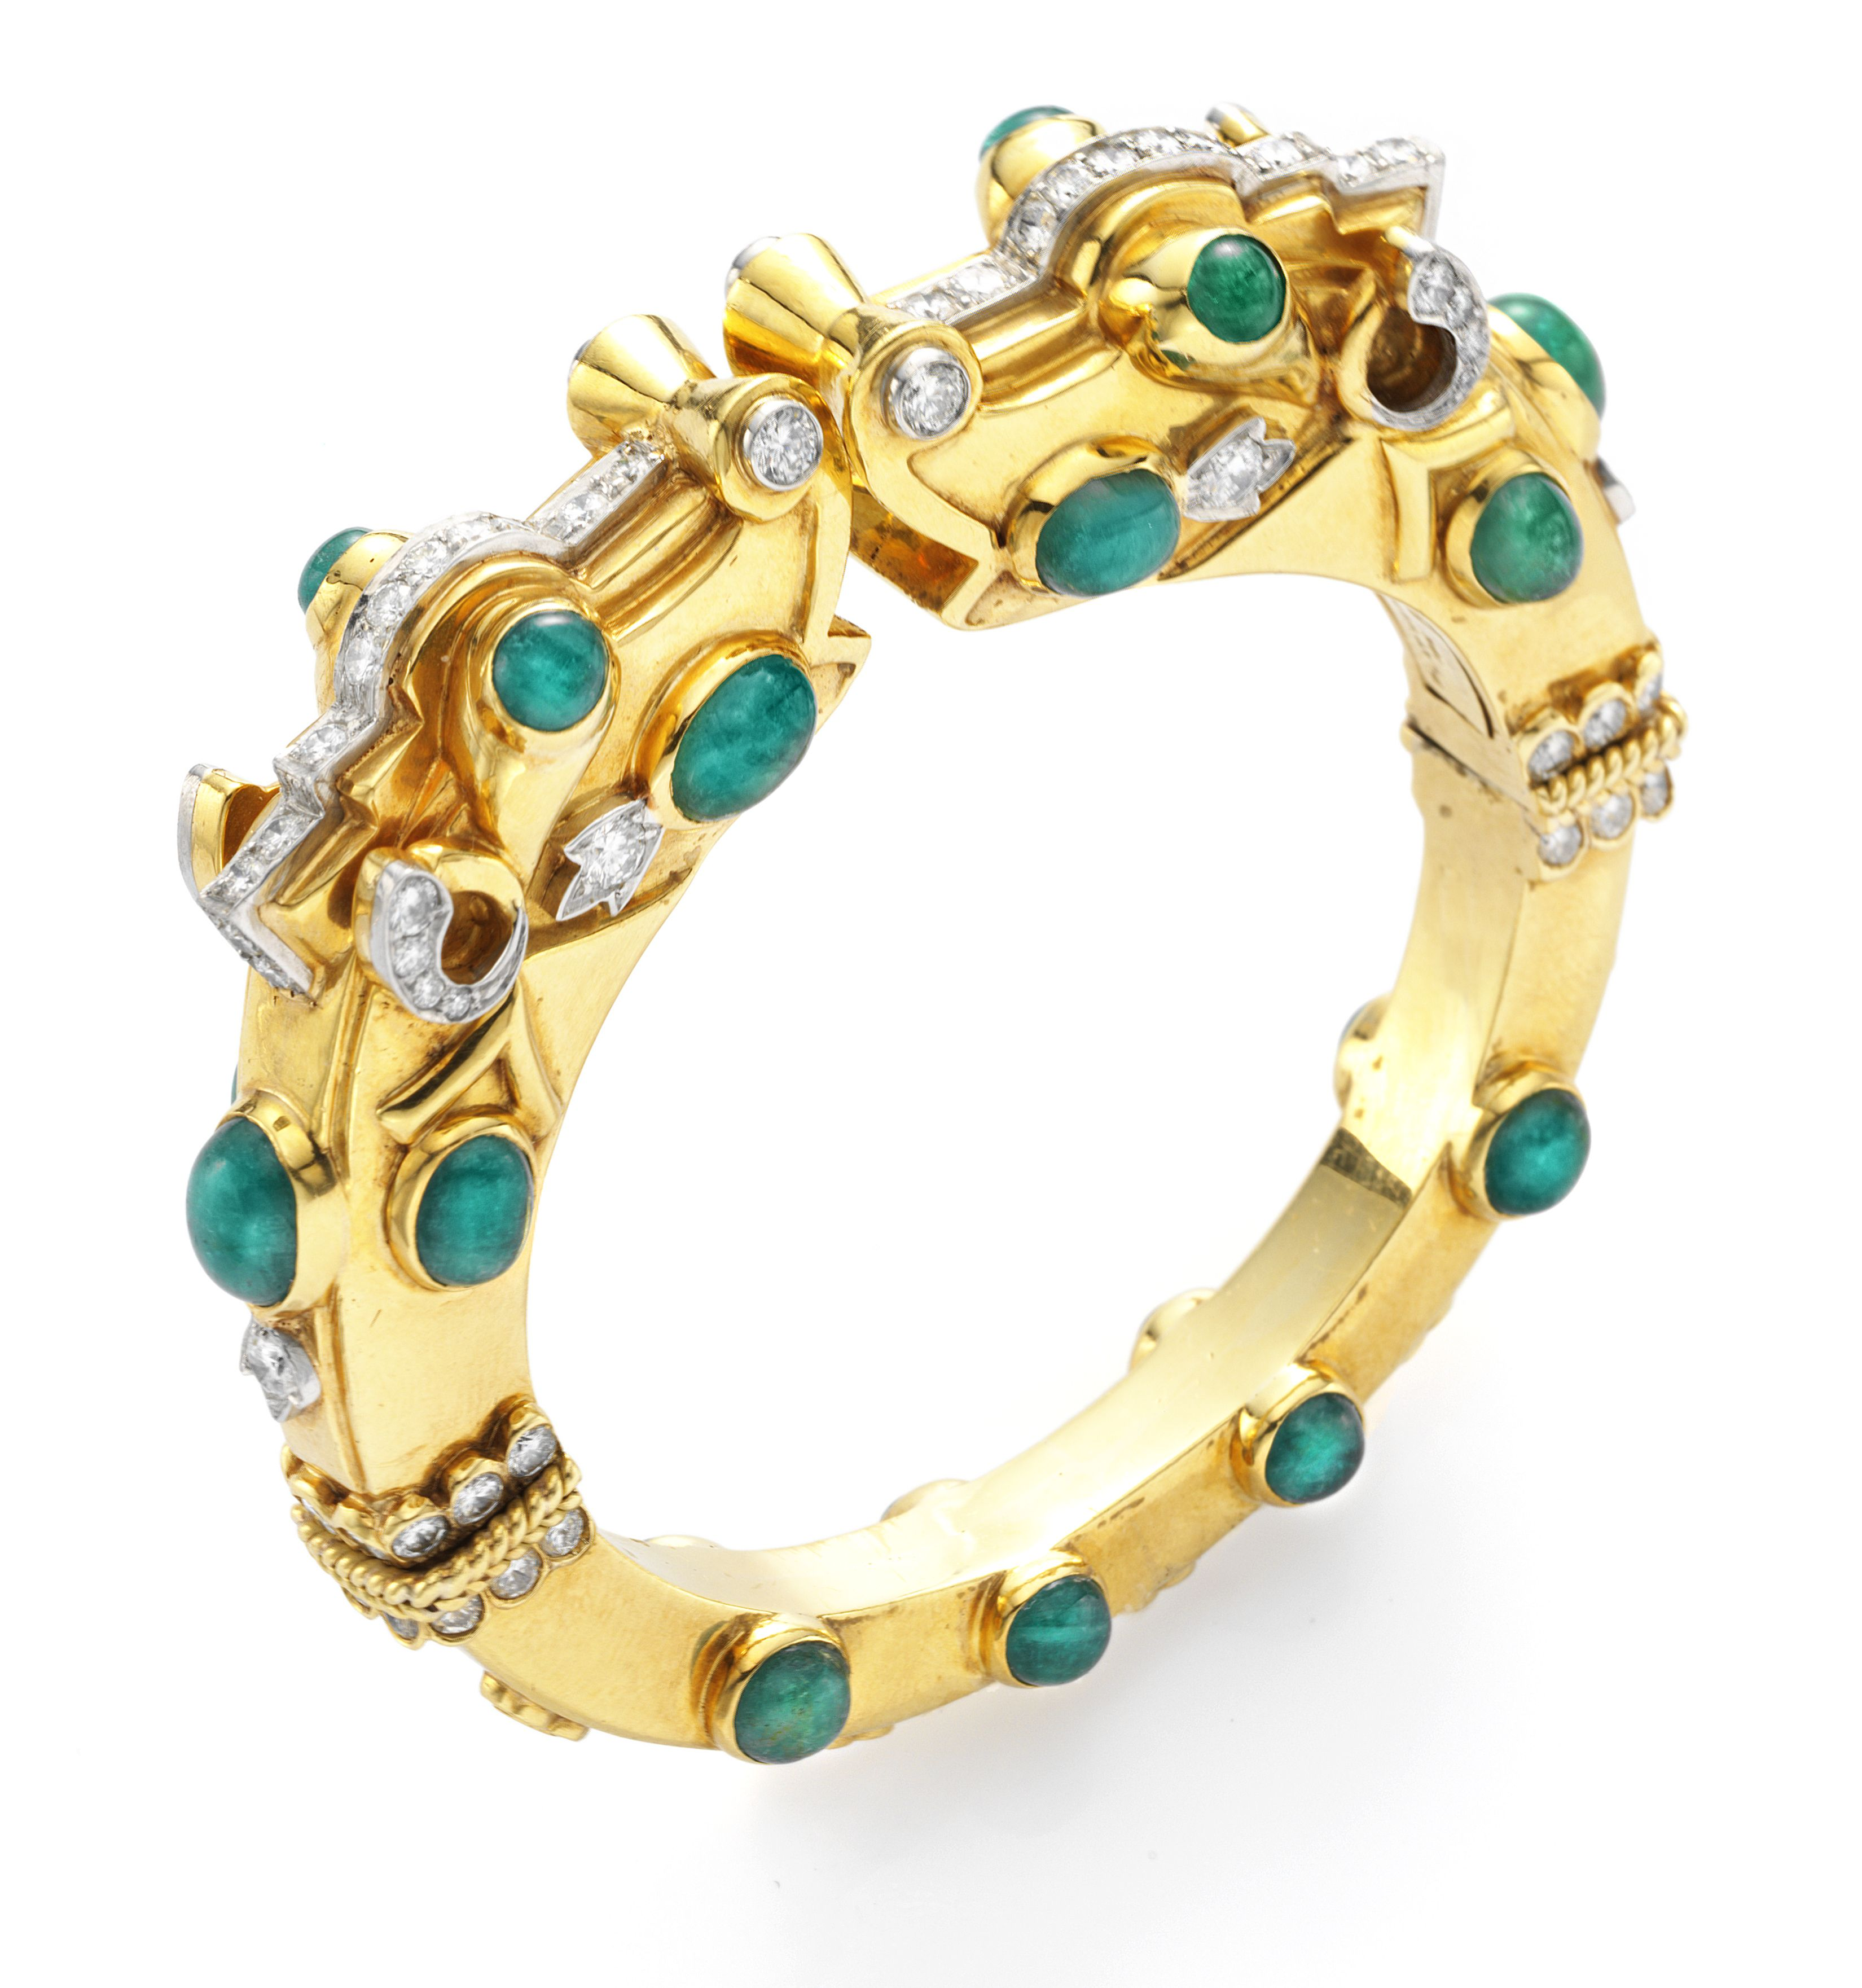 David webb an emerald diamond and gold bangle bracelet by david